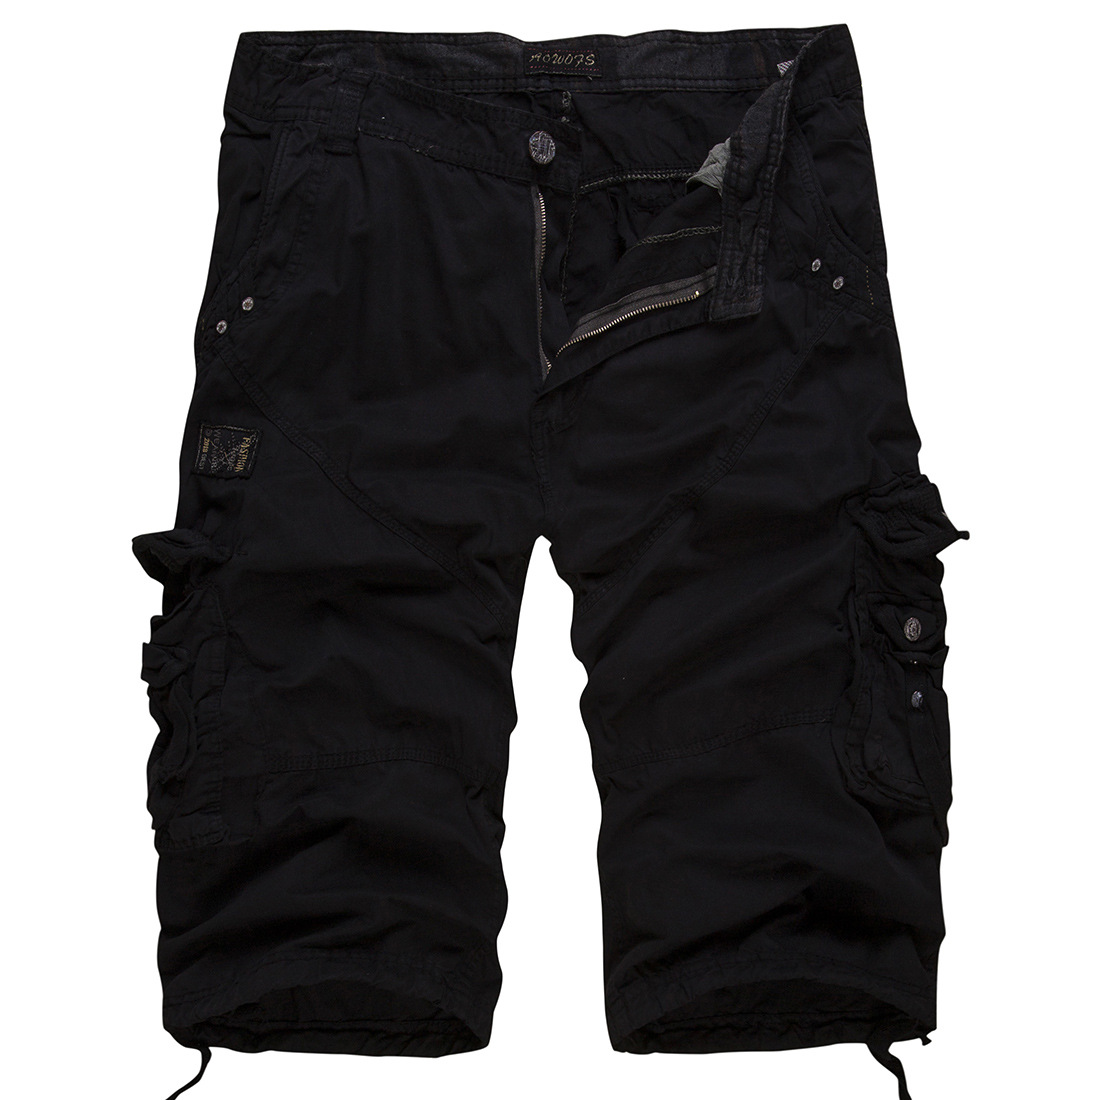 Cargo Pants Men Loose Trousers Summer Baggy Cargo Cotton Calf Length Plus Size Pants Cas ...